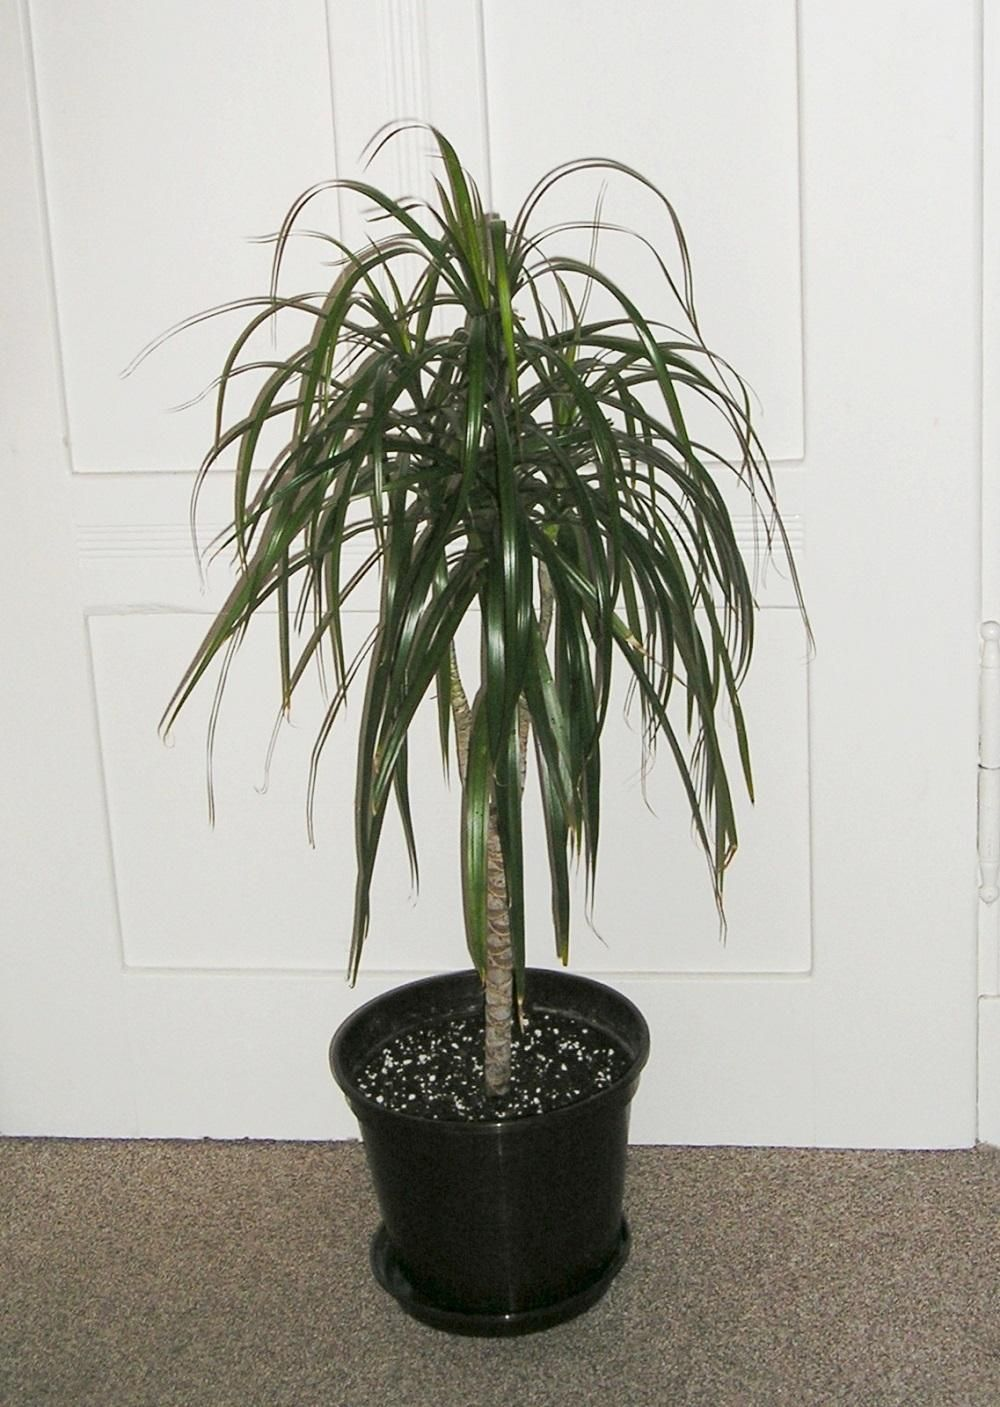 The Dracaena Marginata A Shrub And Member Of Agavaceae Family Is Tall Leafy Potted Plant In Many Homes Businesses